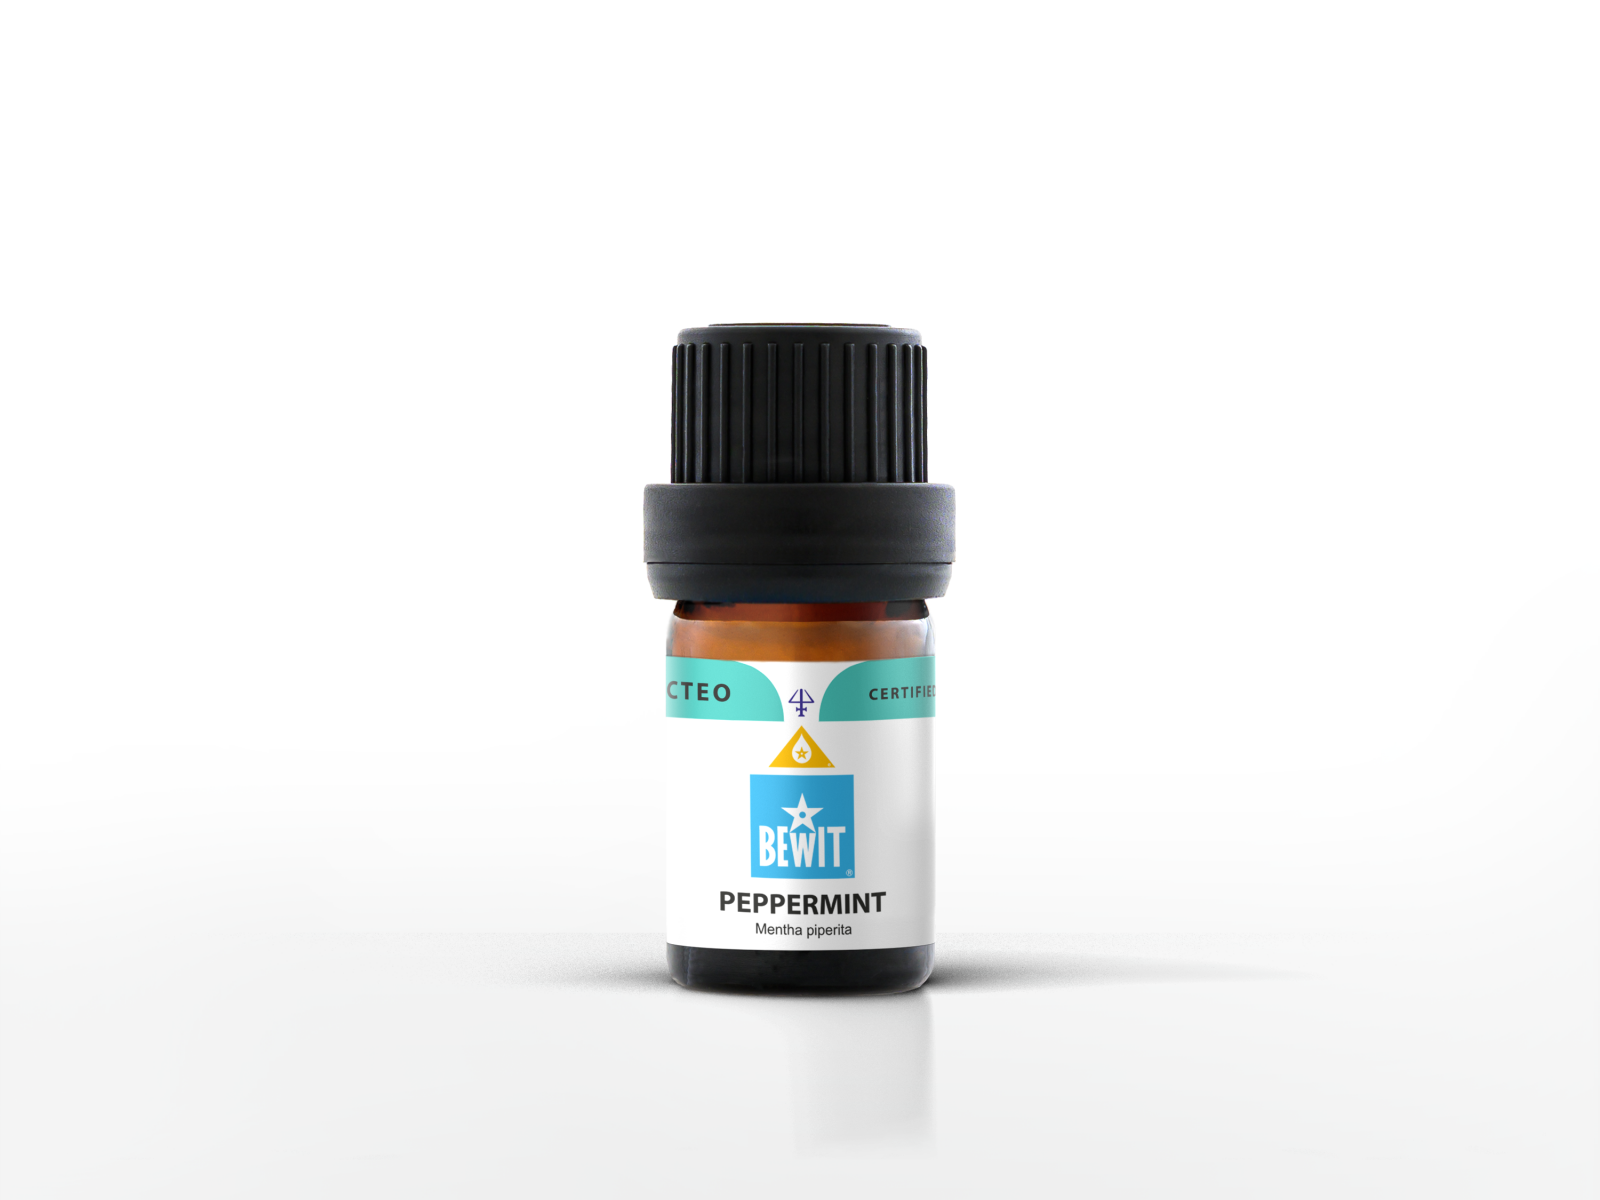 Peppermint - 100% pure essential oil, 15 ml - 4